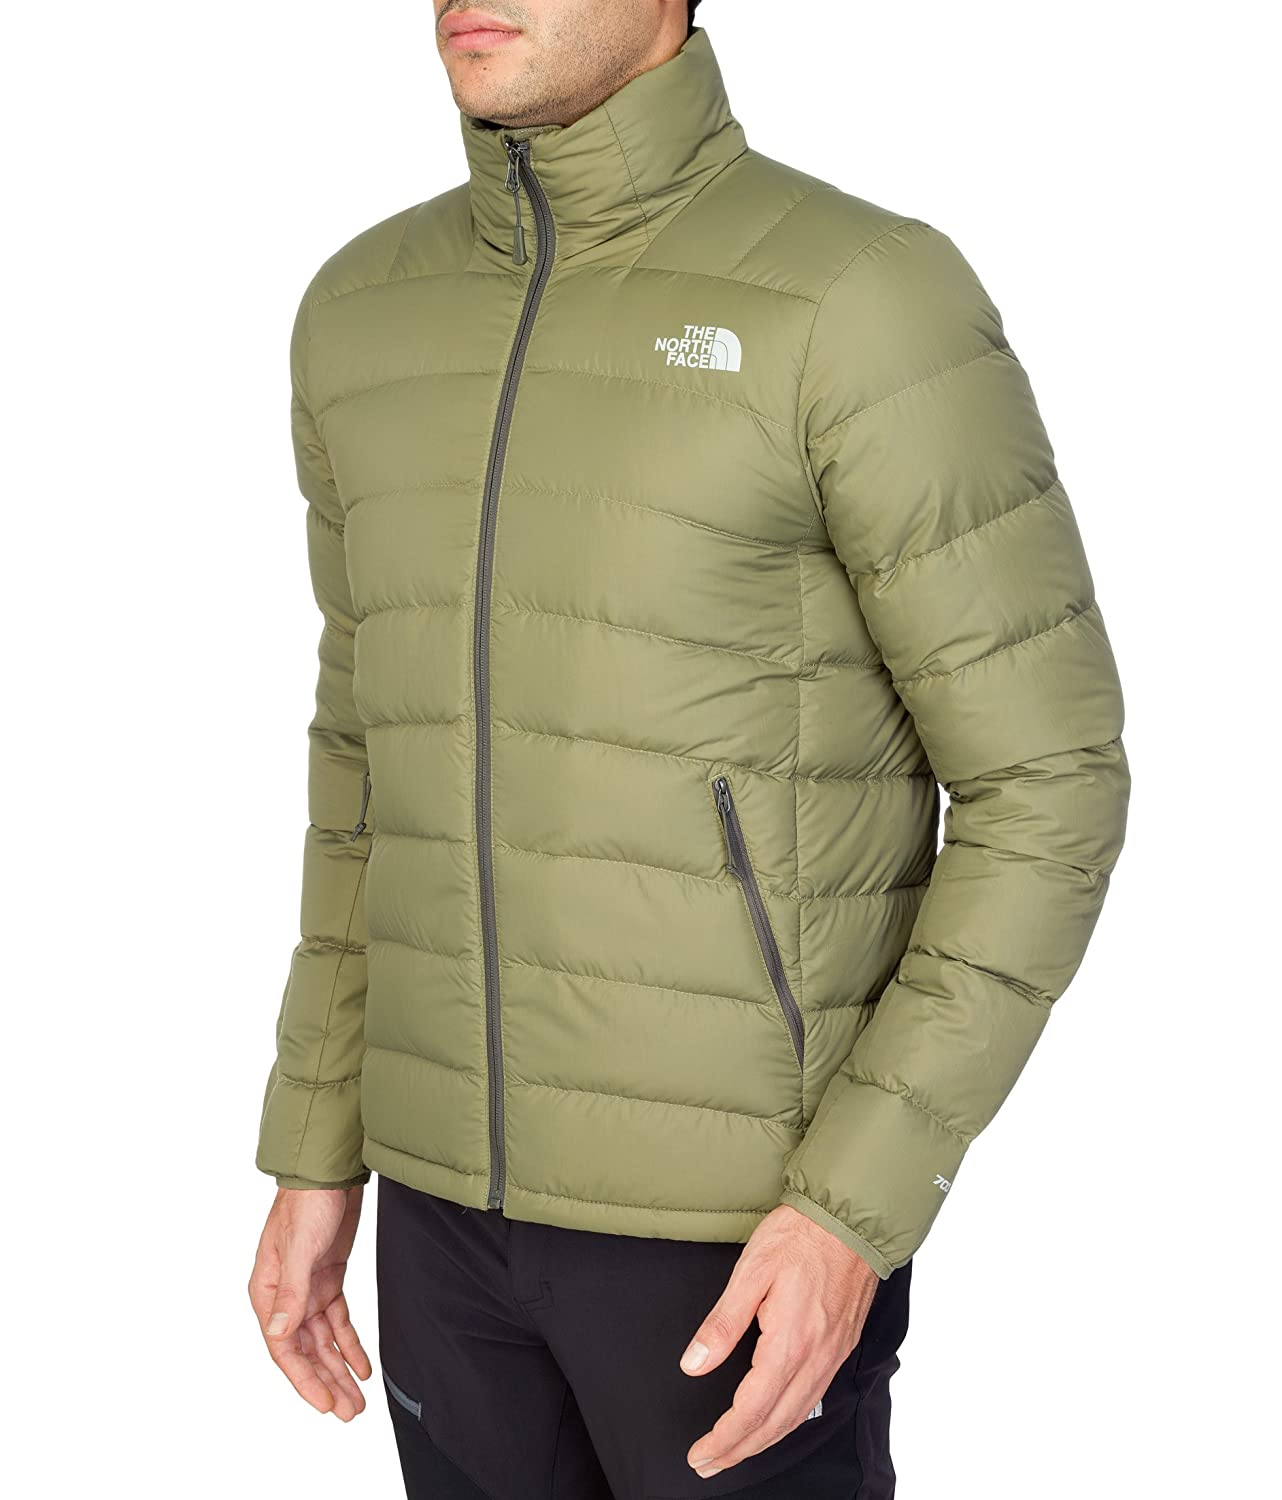 The North Face La Paz Jacket Men – Daunenjacke online kaufen